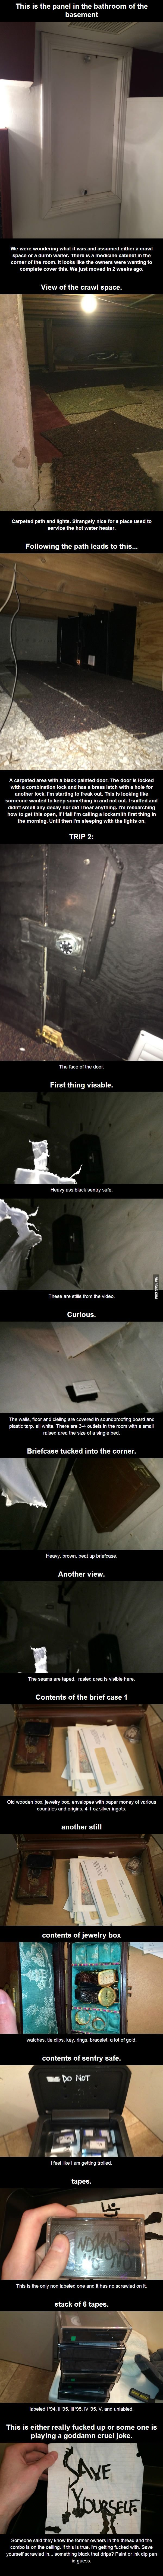 Guy found a creepy room in a hidden crawl space in his new home.